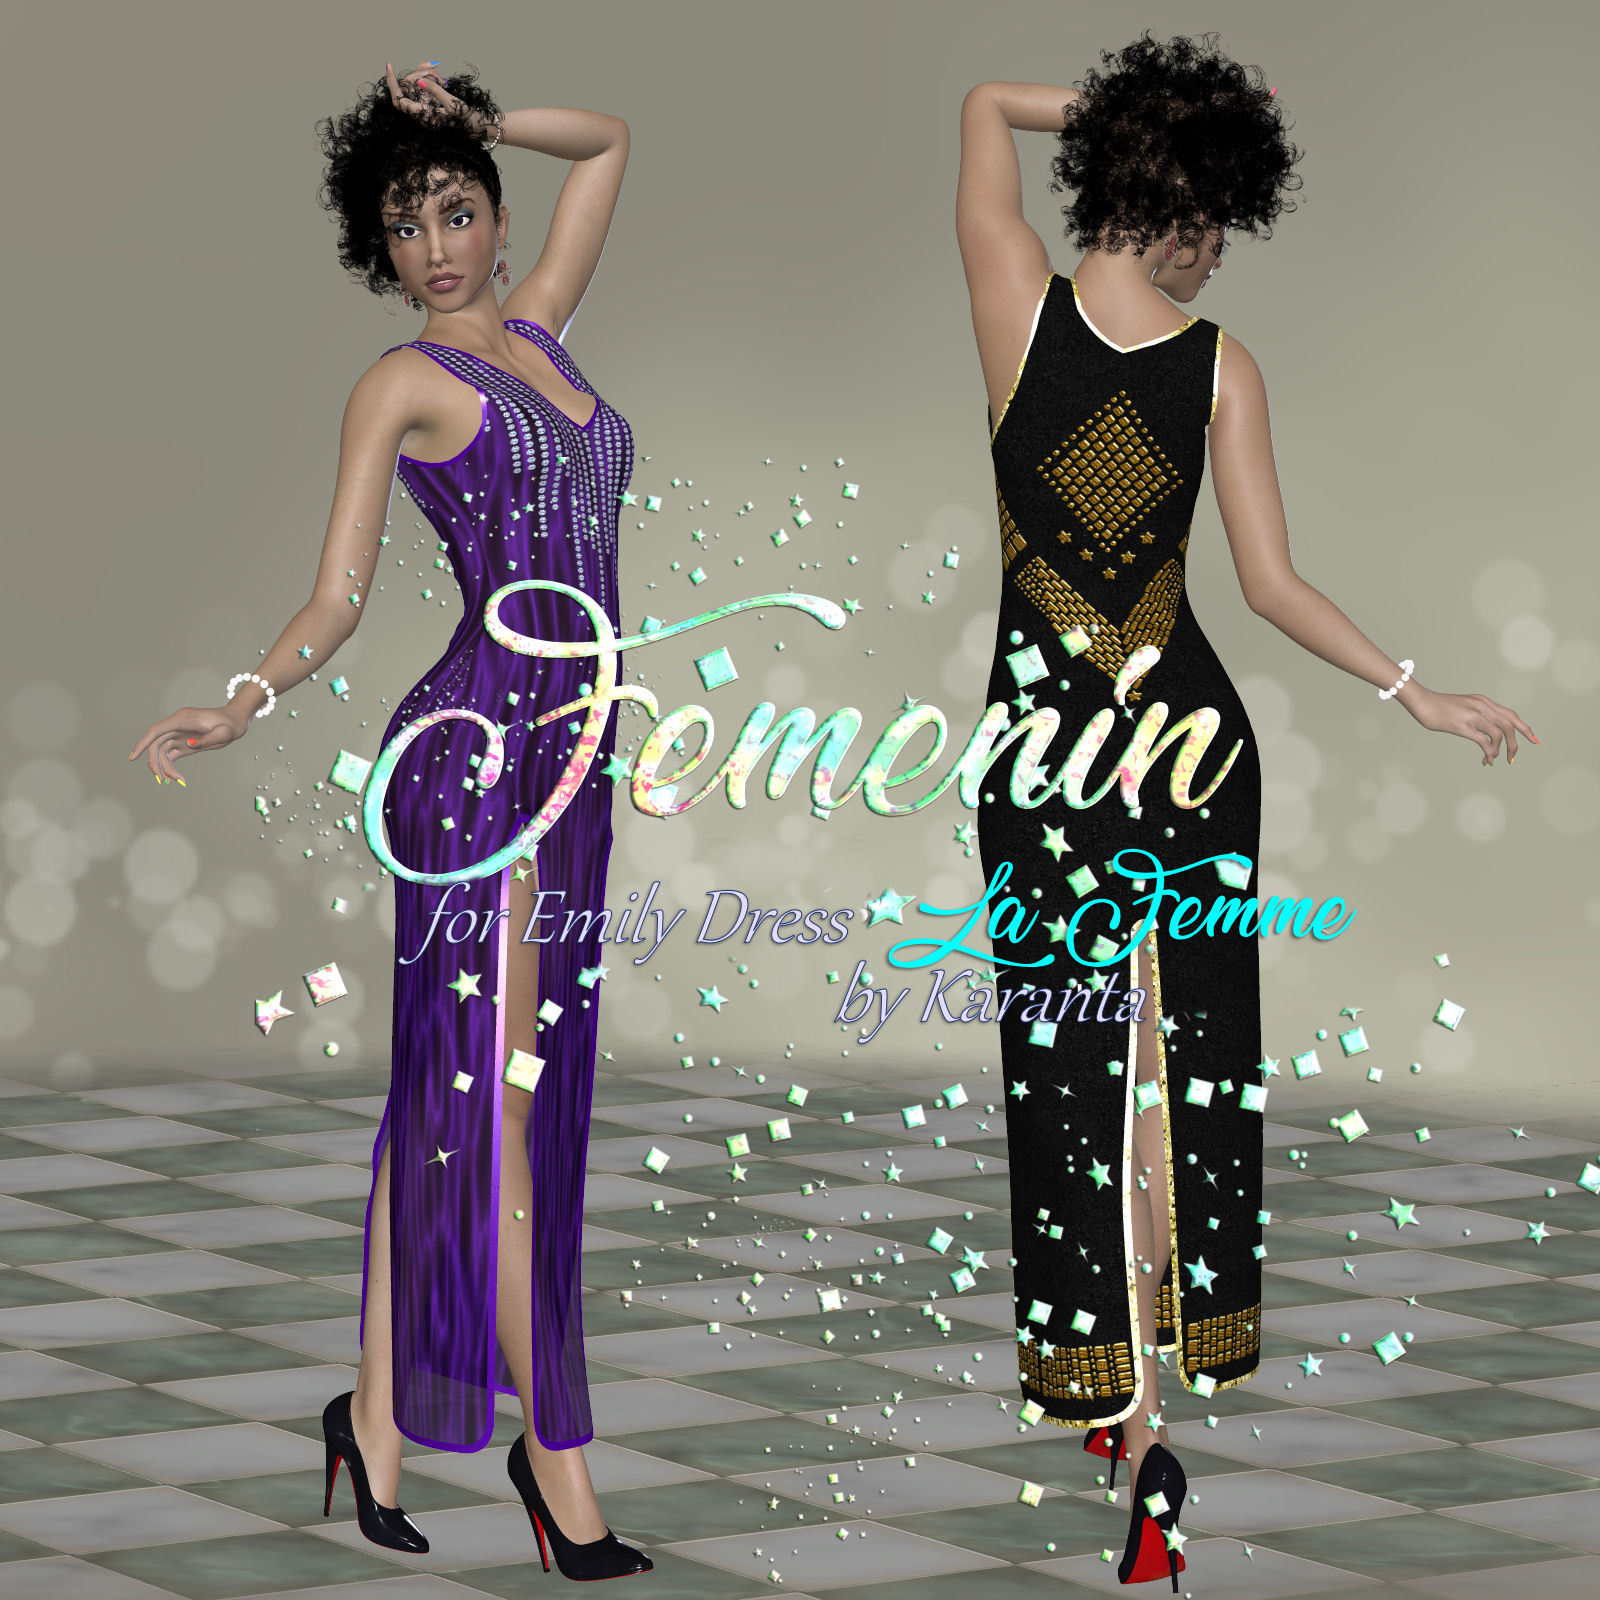 DA-Femenin for Emily Dress